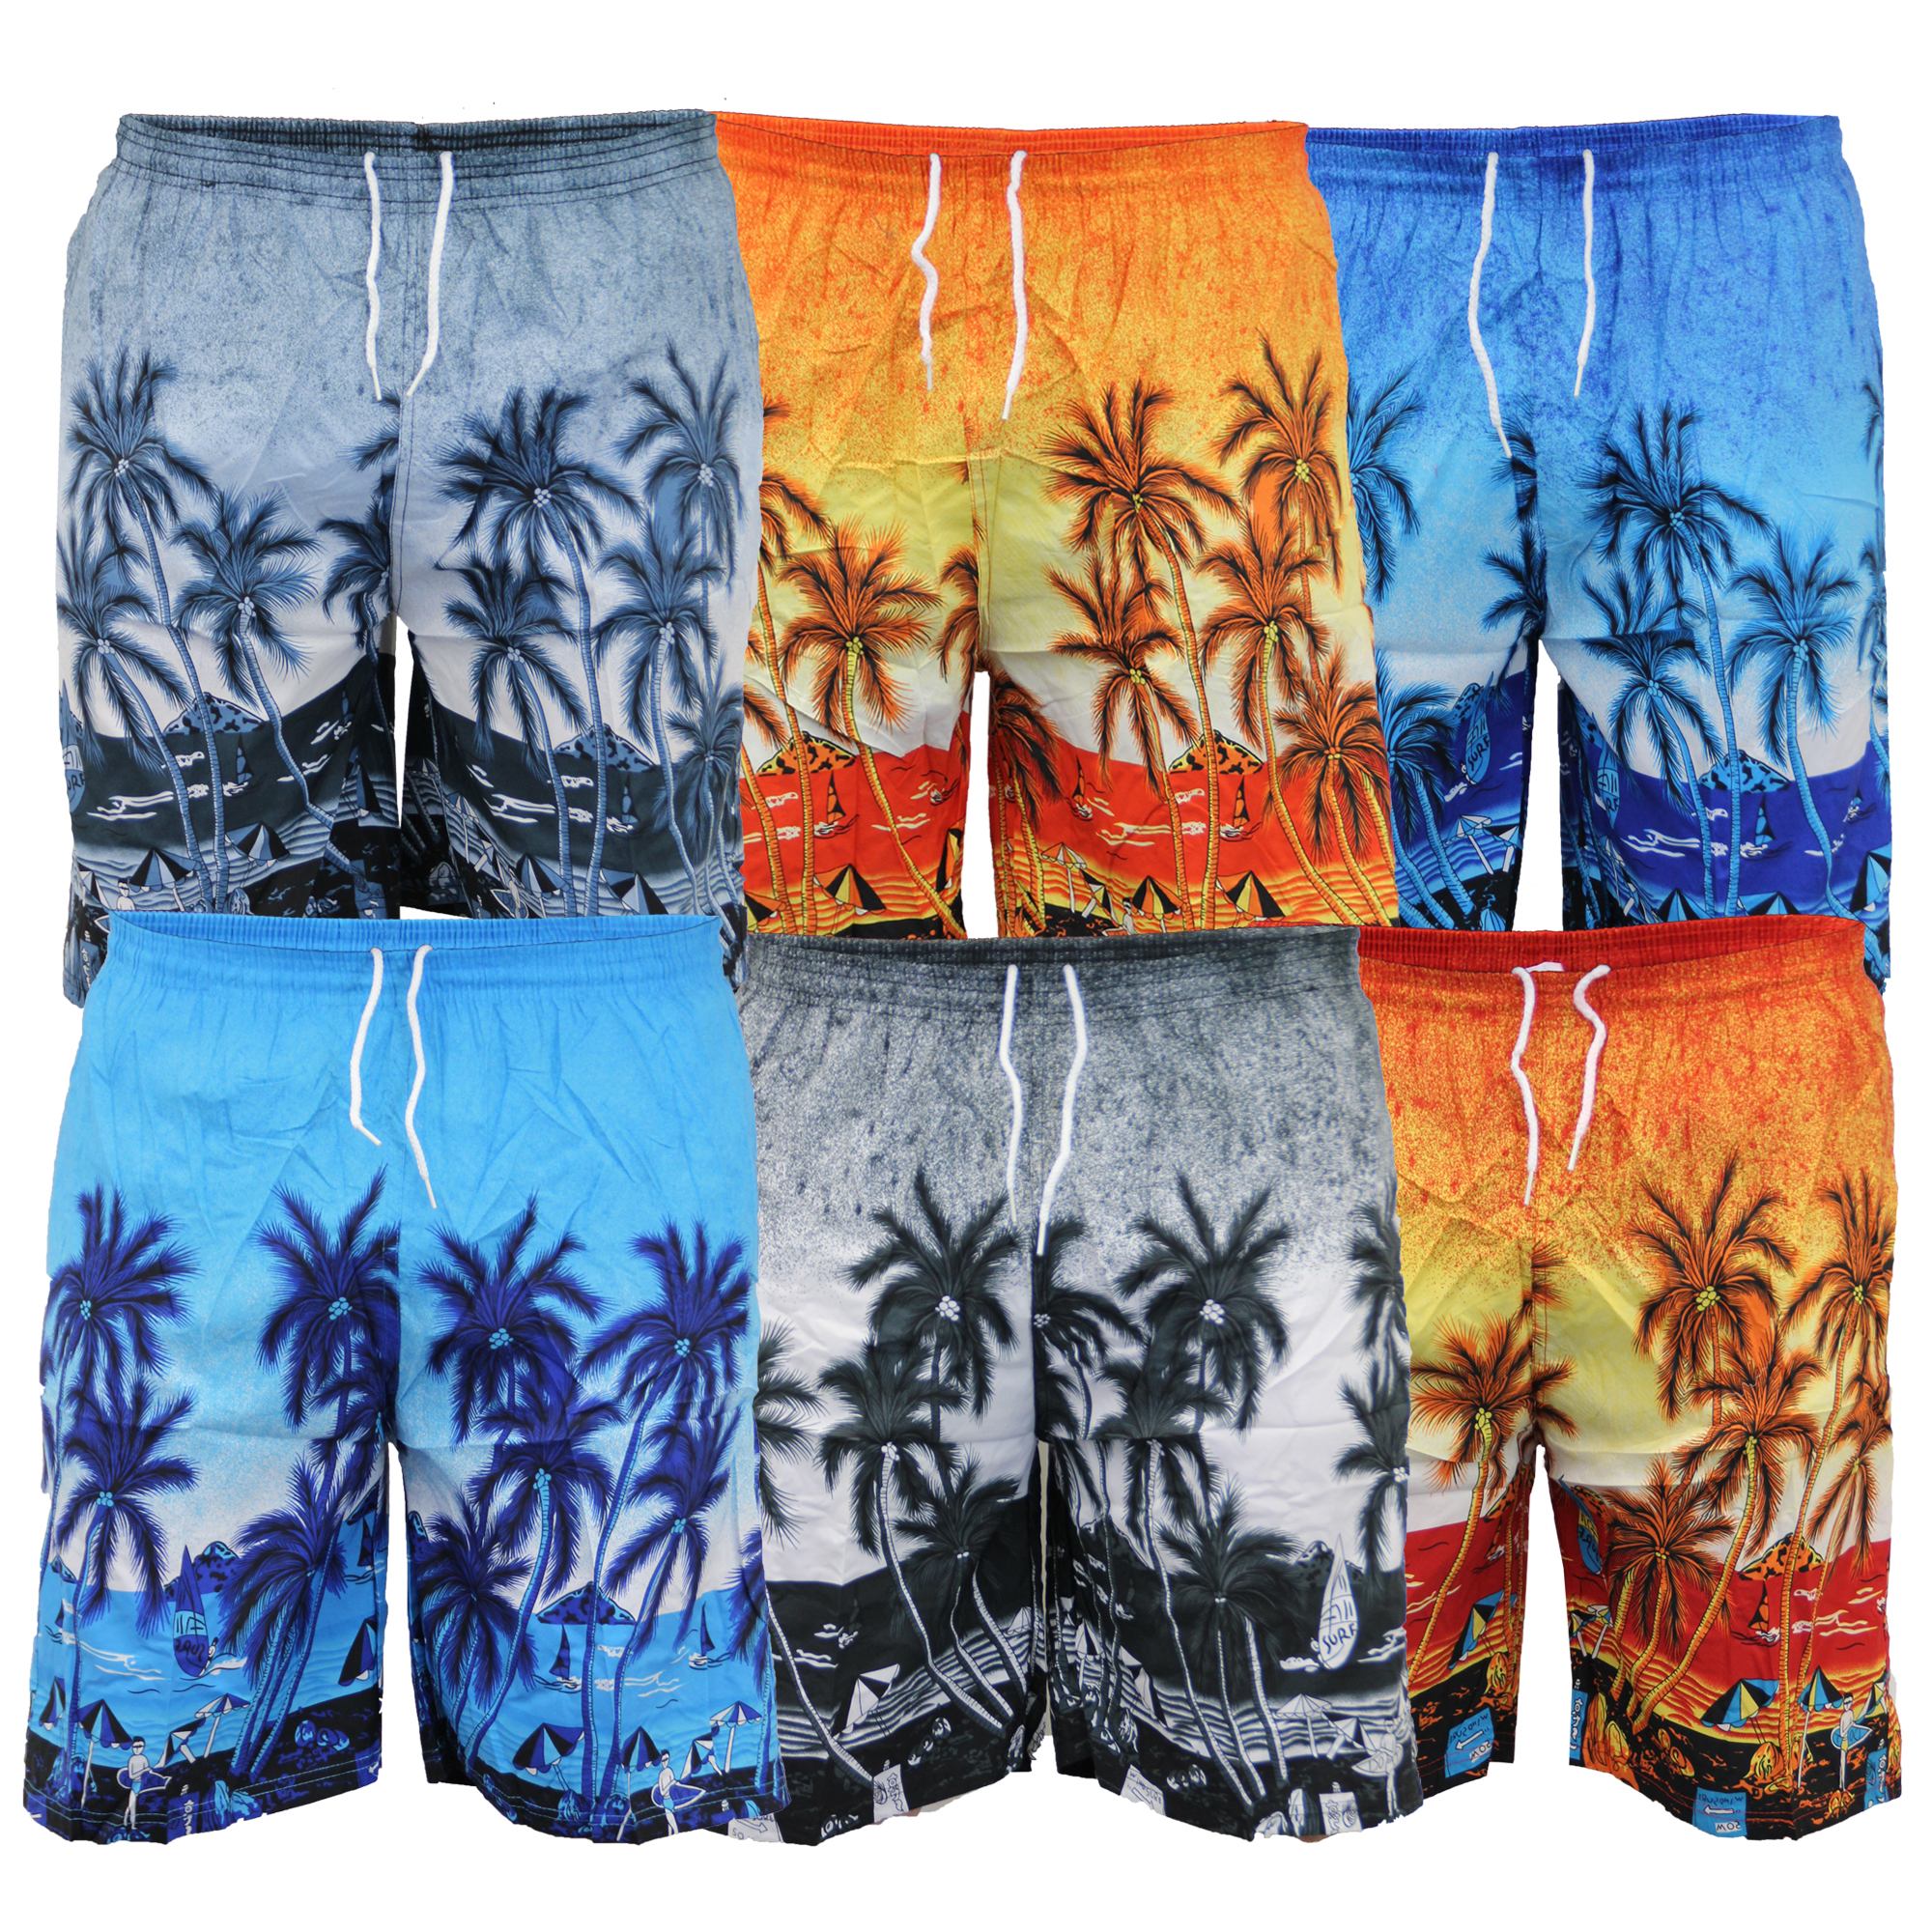 8e8ec410d1 Mens Hawaiian Swimming Shorts Beach Trunks Palm Print Surf Board ...